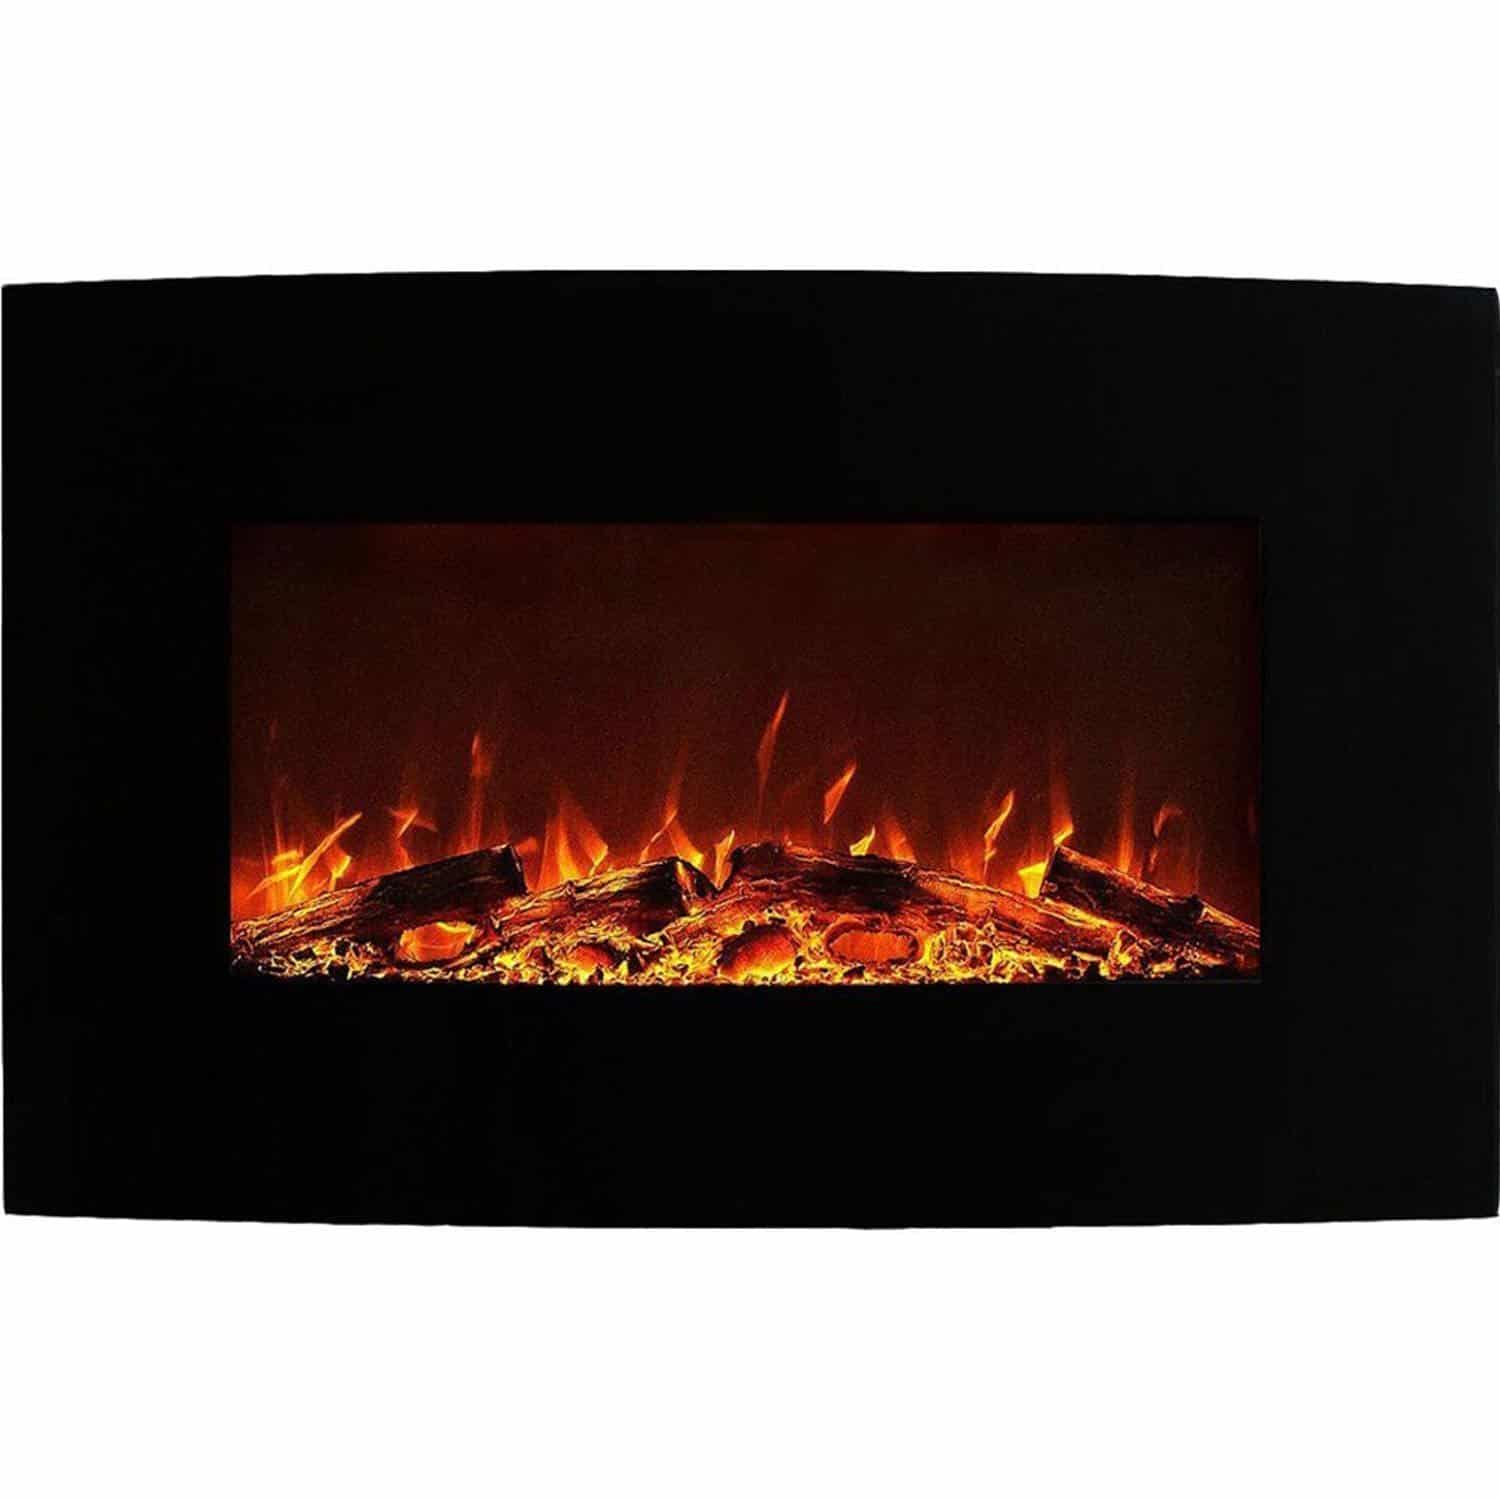 New classic flame electric fireplace inserts make an existing chimney - Neptune 35 Inch Curved Black Wall Mounted Electric Fireplace